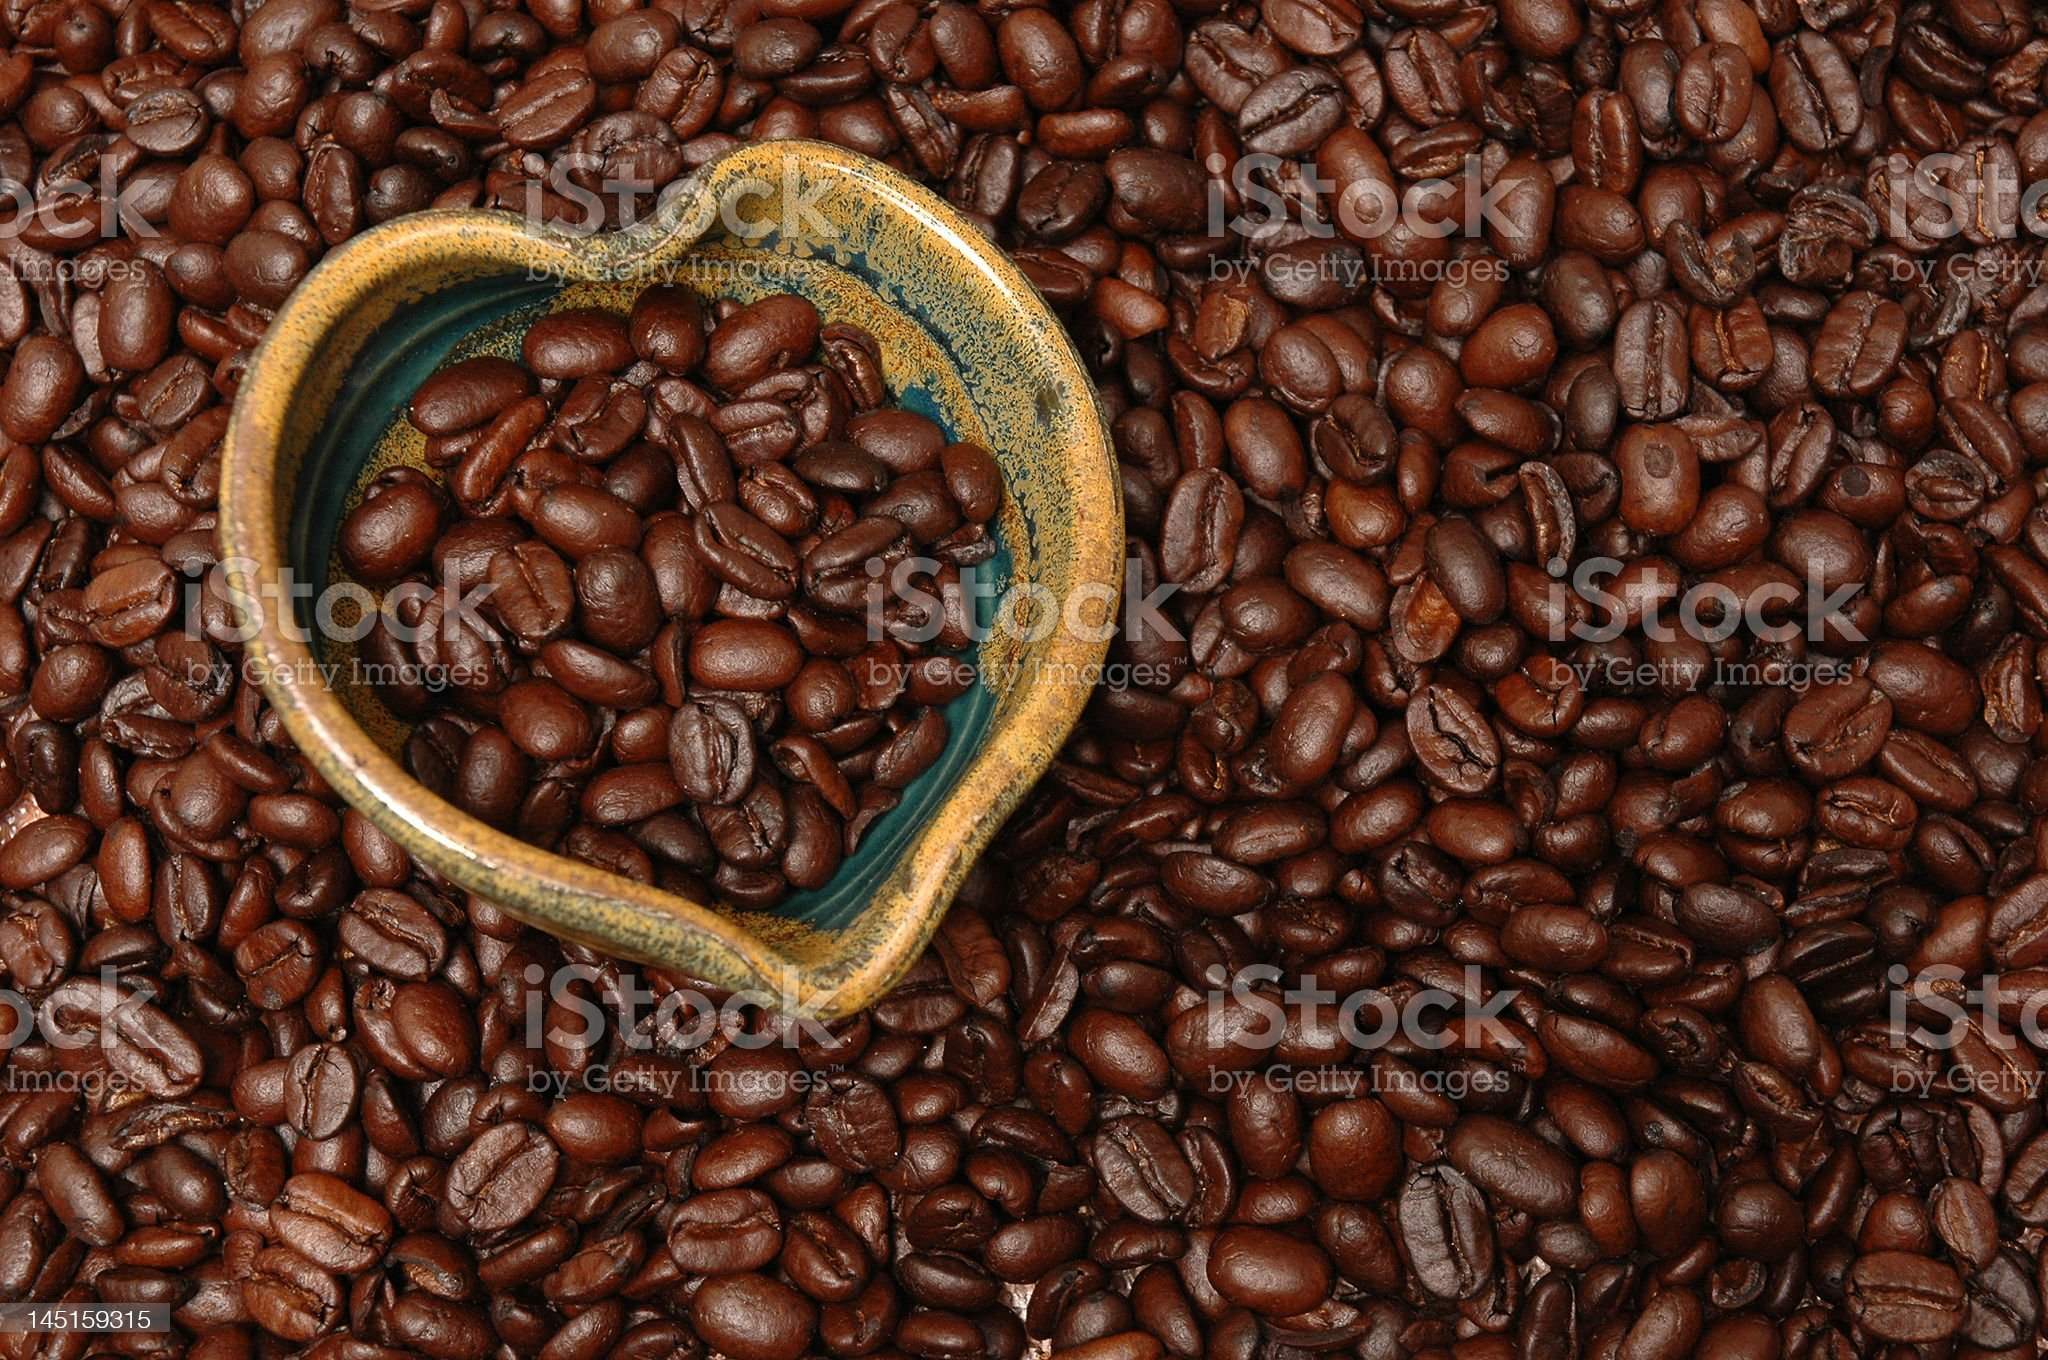 Healthy Heart coffee beans royalty-free stock photo